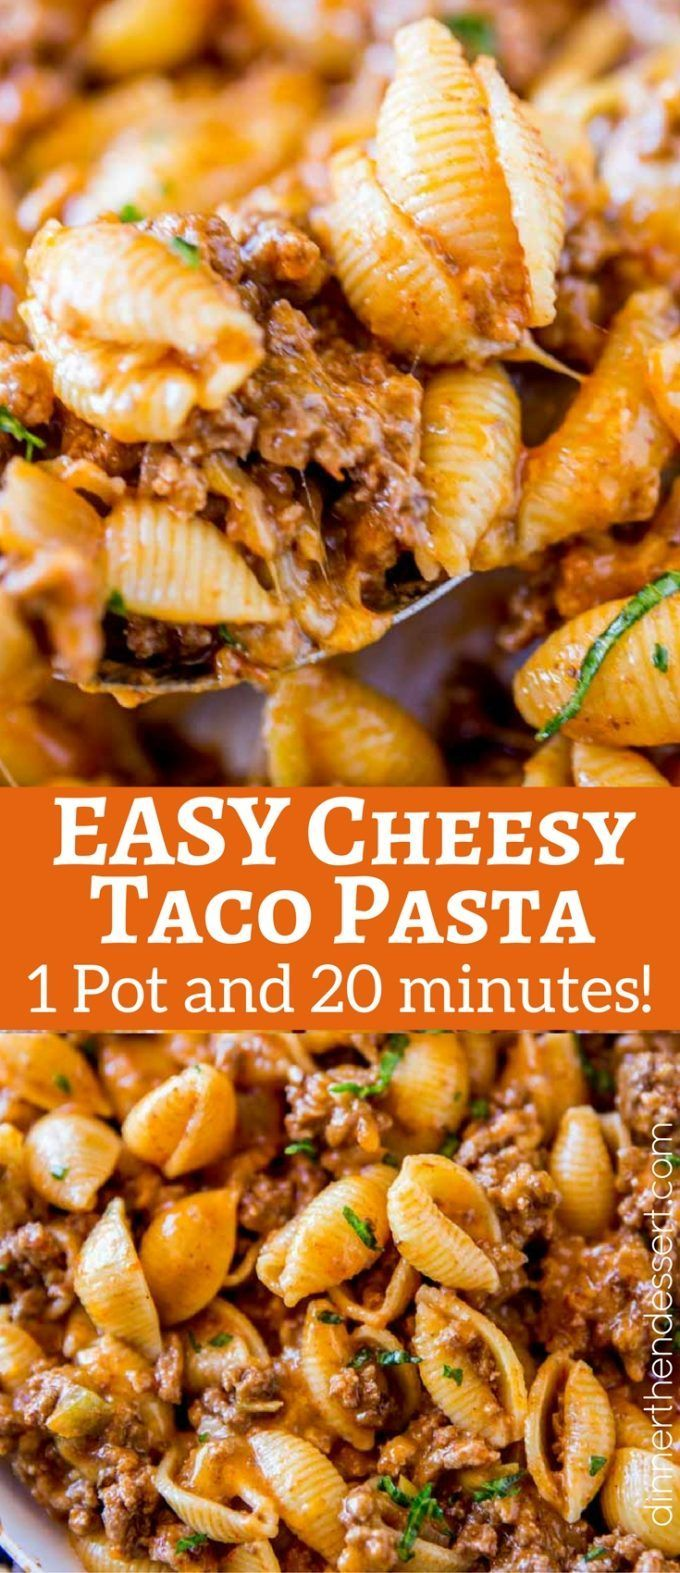 We LOVED this Cheesy Taco Pasta, just like the Hamburger Helper we grew up with! #easydinners